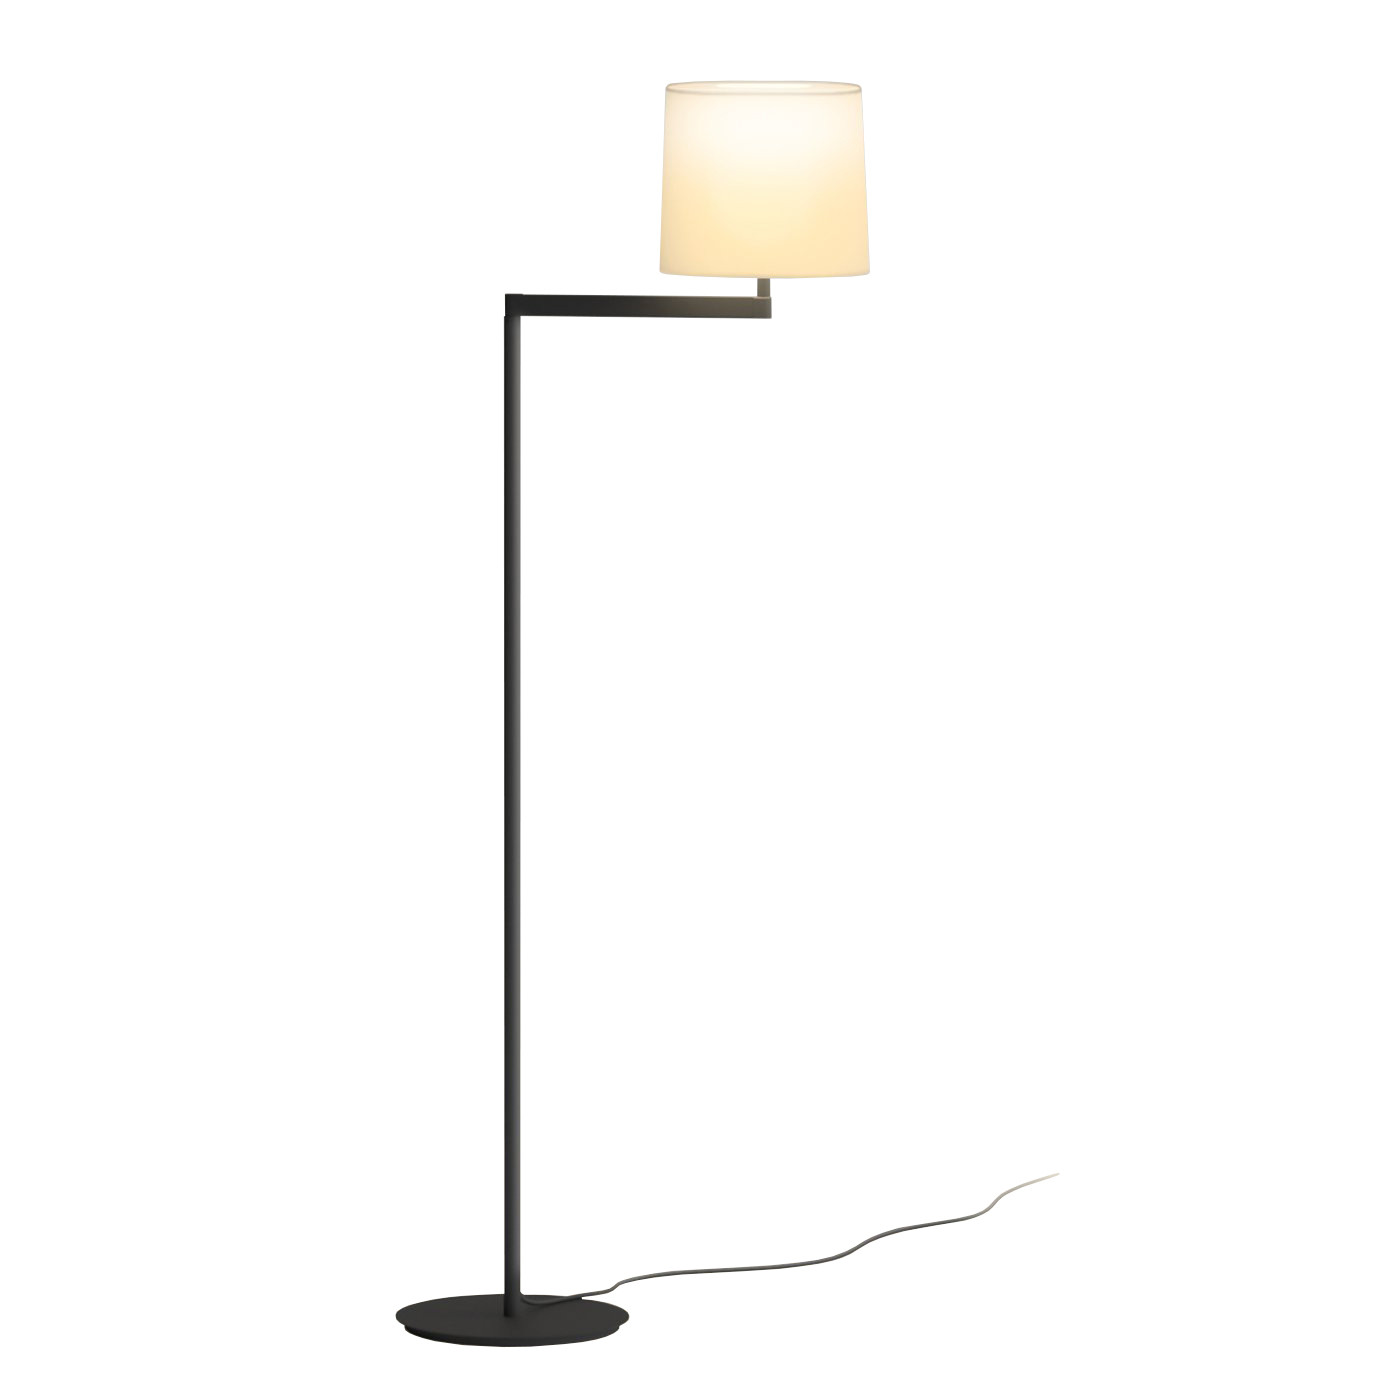 Vibia Swing 0503 Stehleuchte